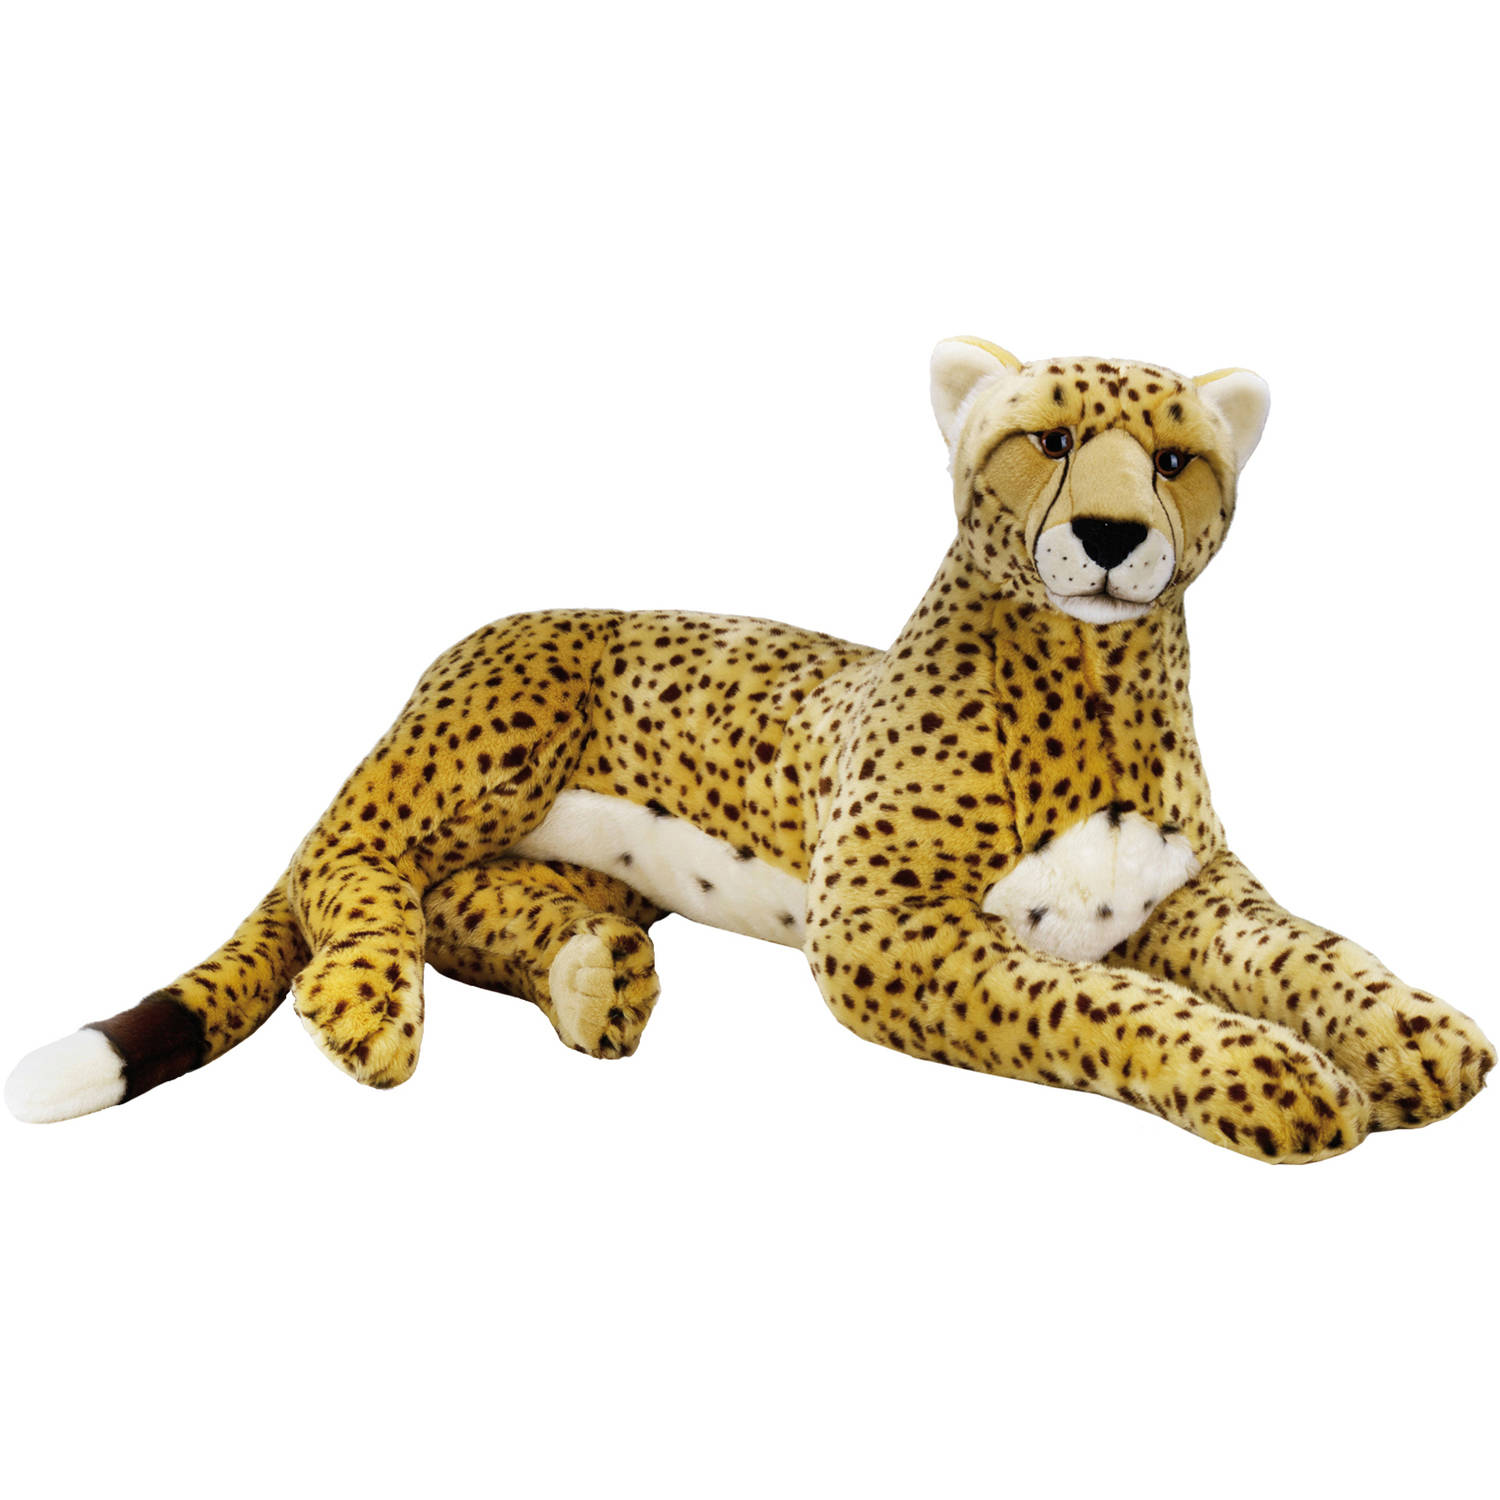 Lelly National Geographic Plush, Giant CHeetah by Venturelli